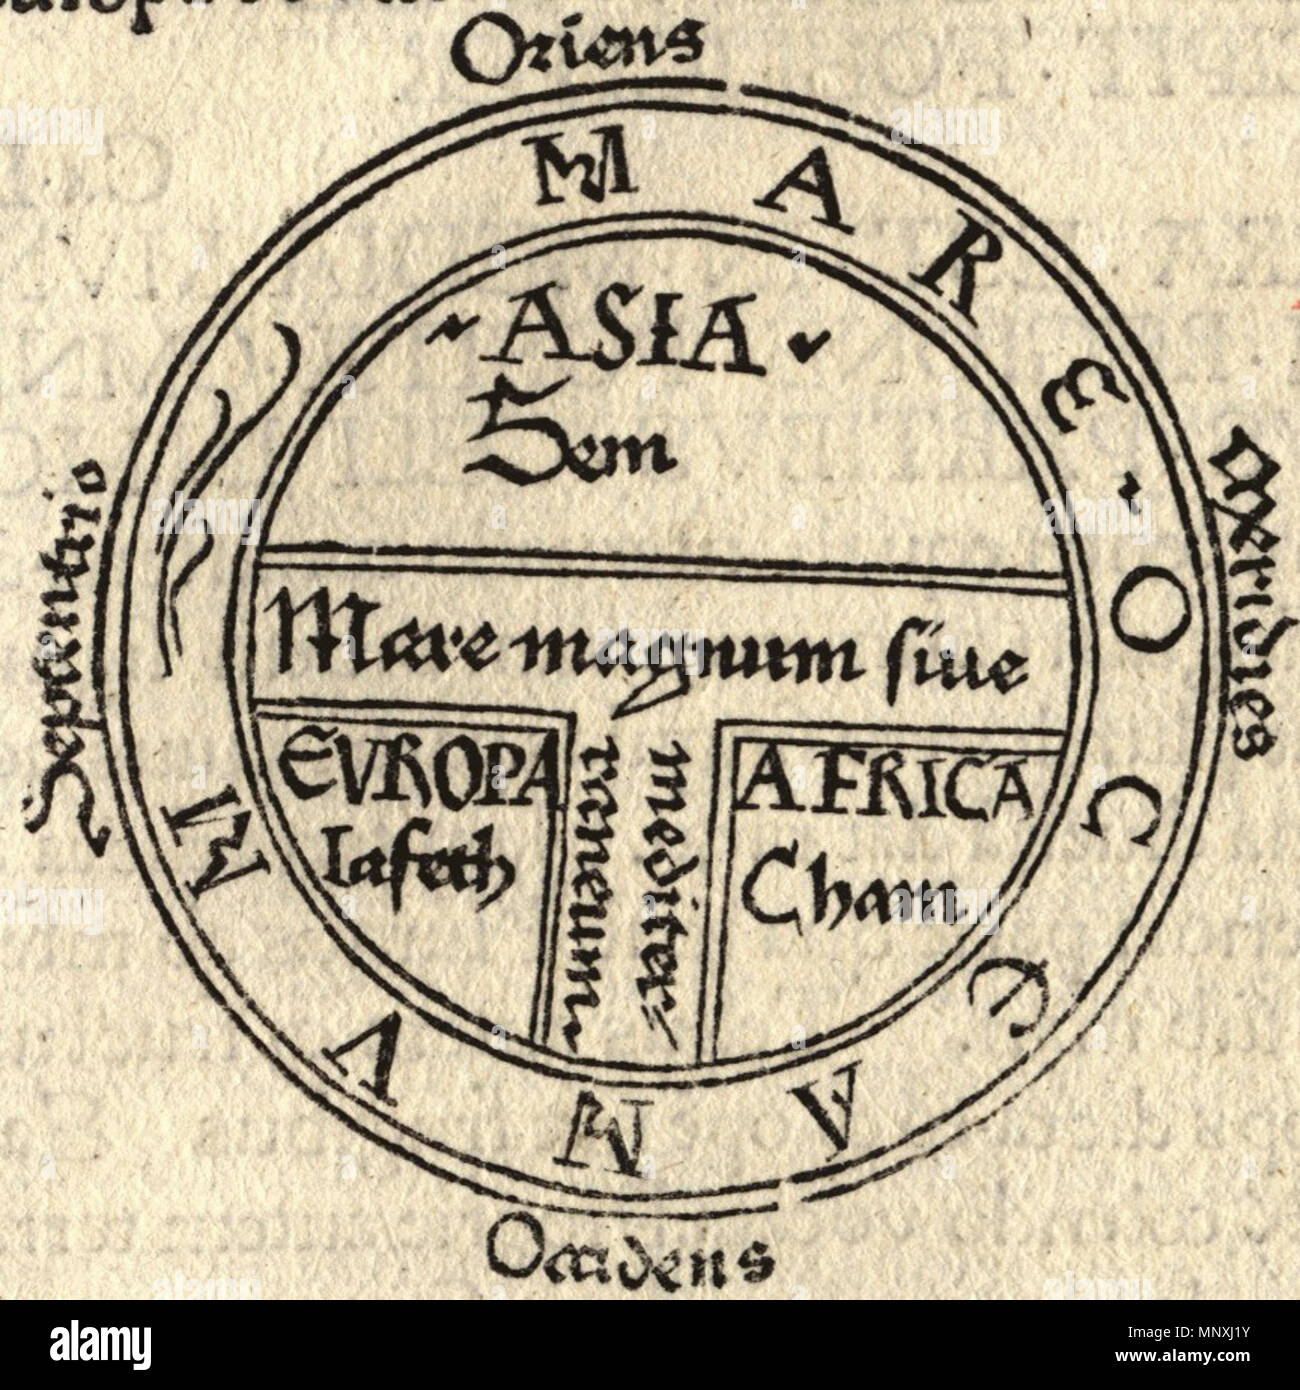 Oldest Known World Map.T And O Style Mappa Mundi Map Of The Known World From The First